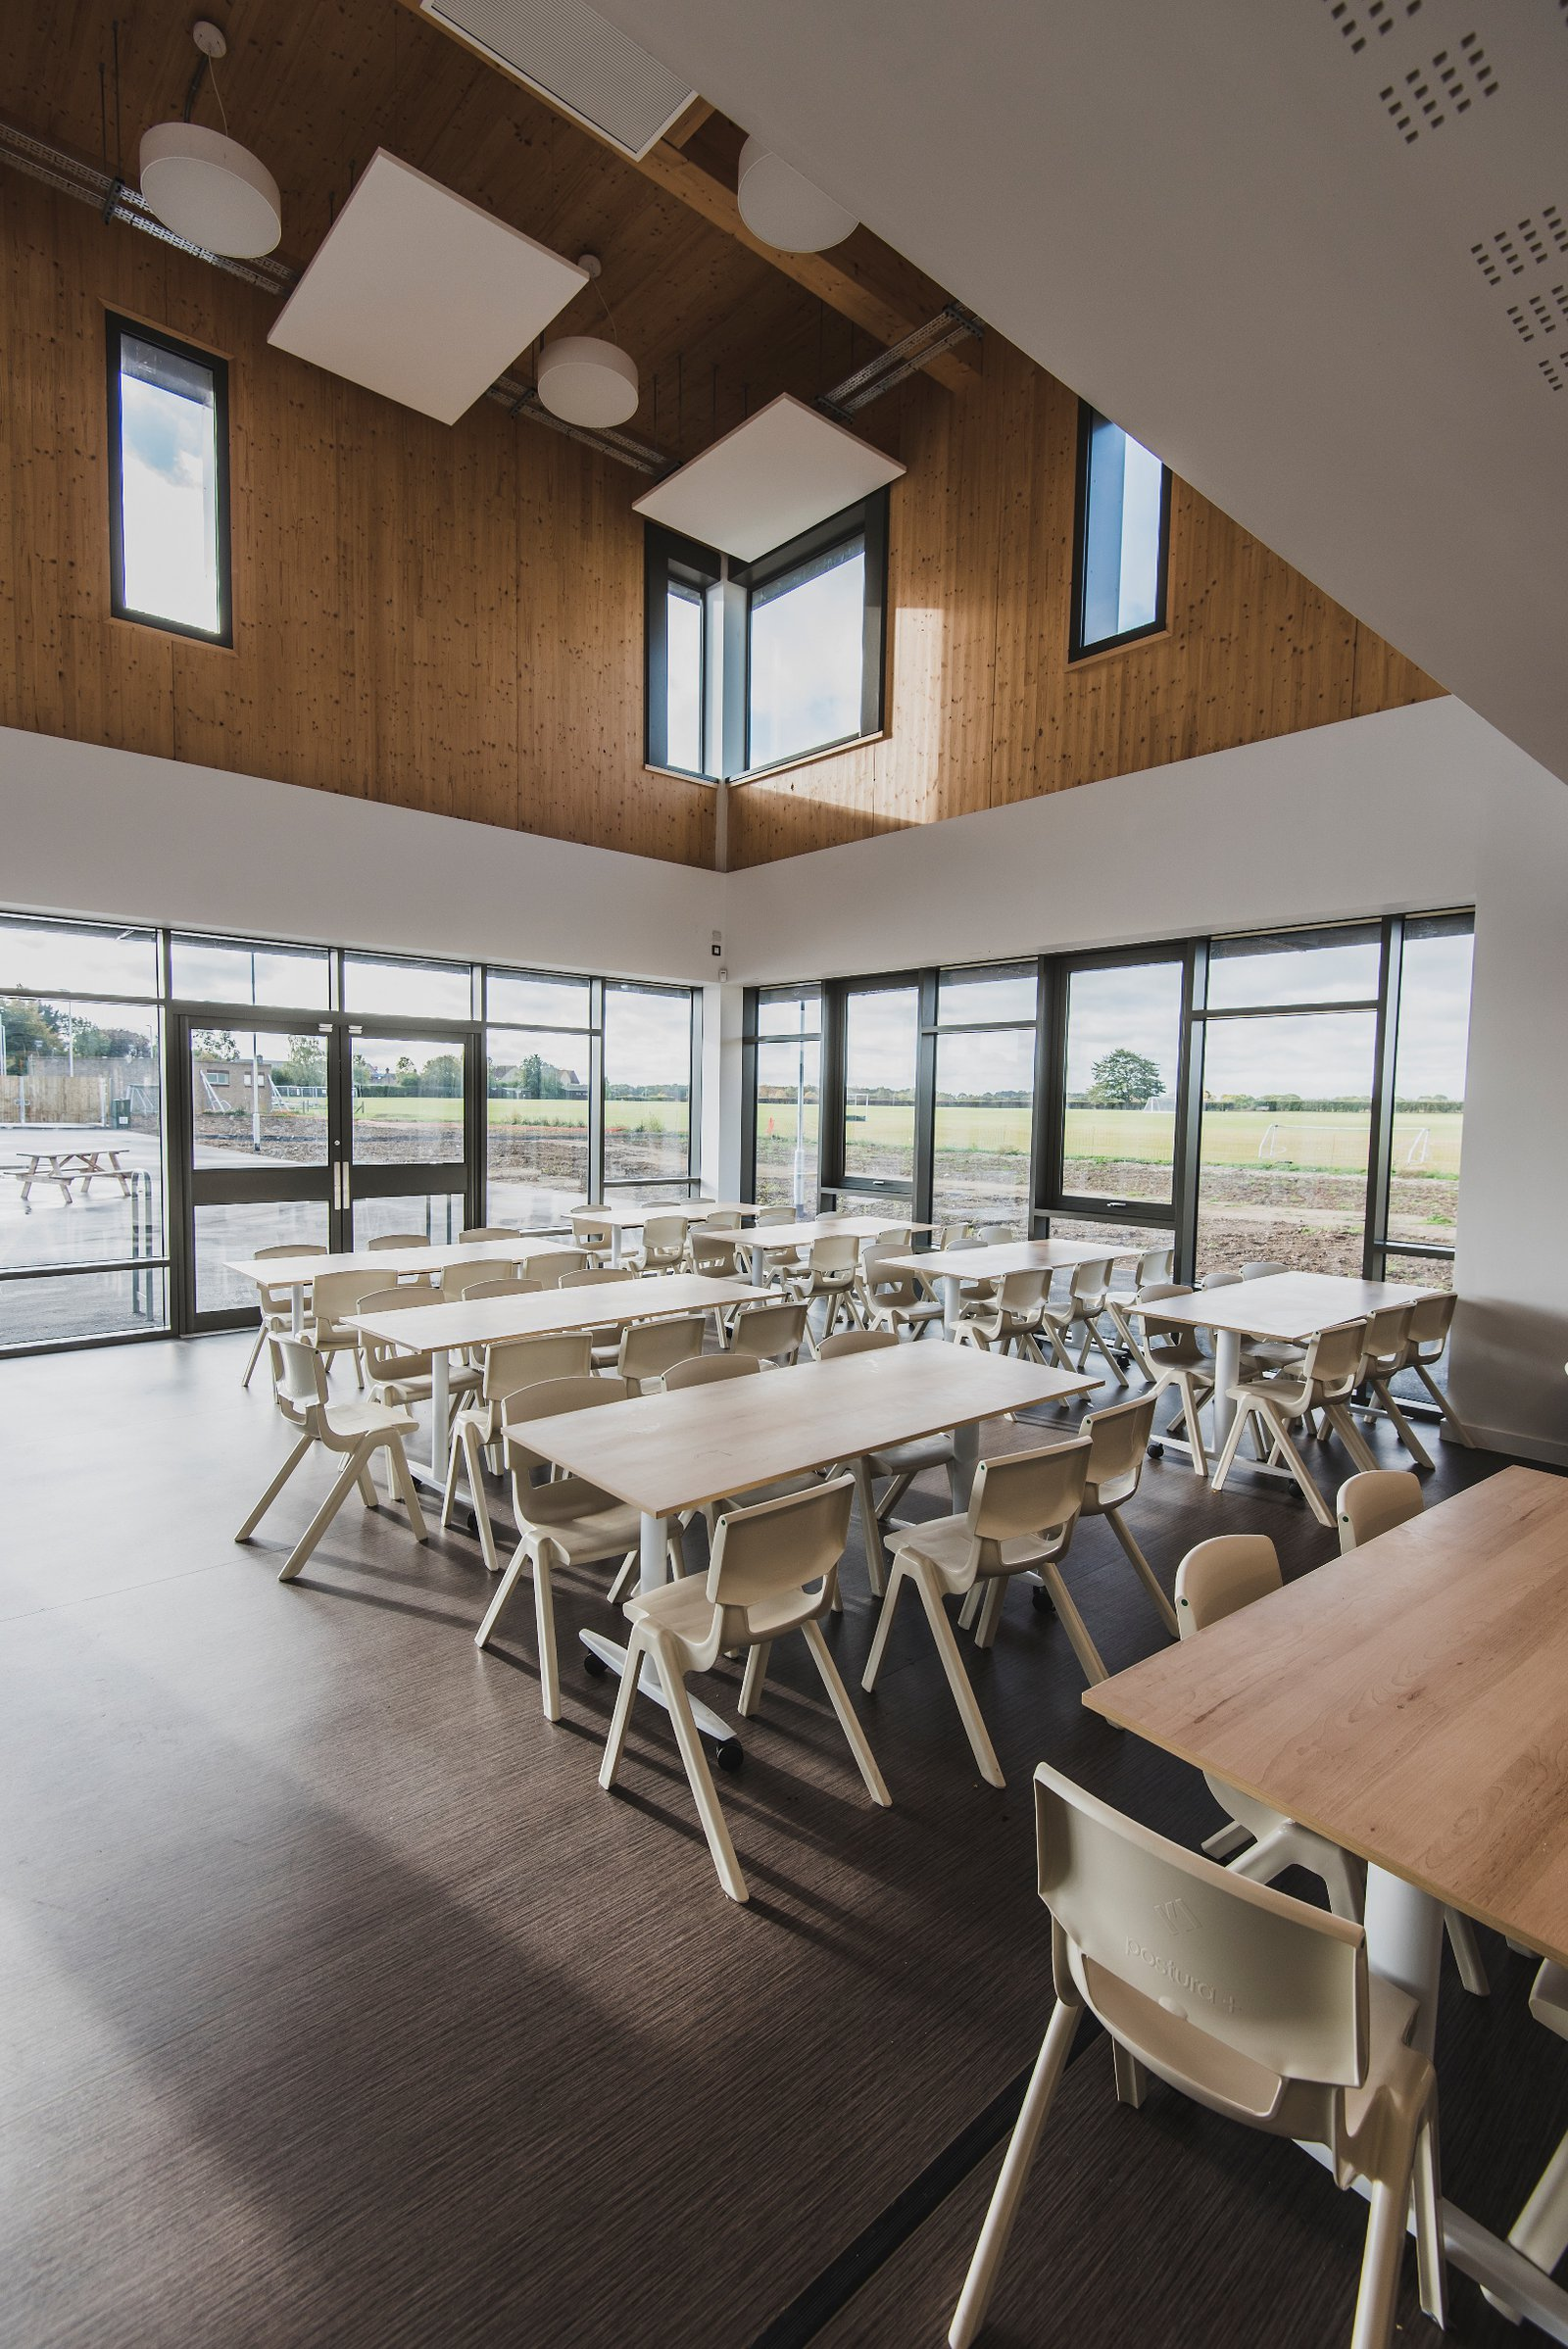 Image of the completed Bottisham Village College which was built by Morgan Sindall Construction